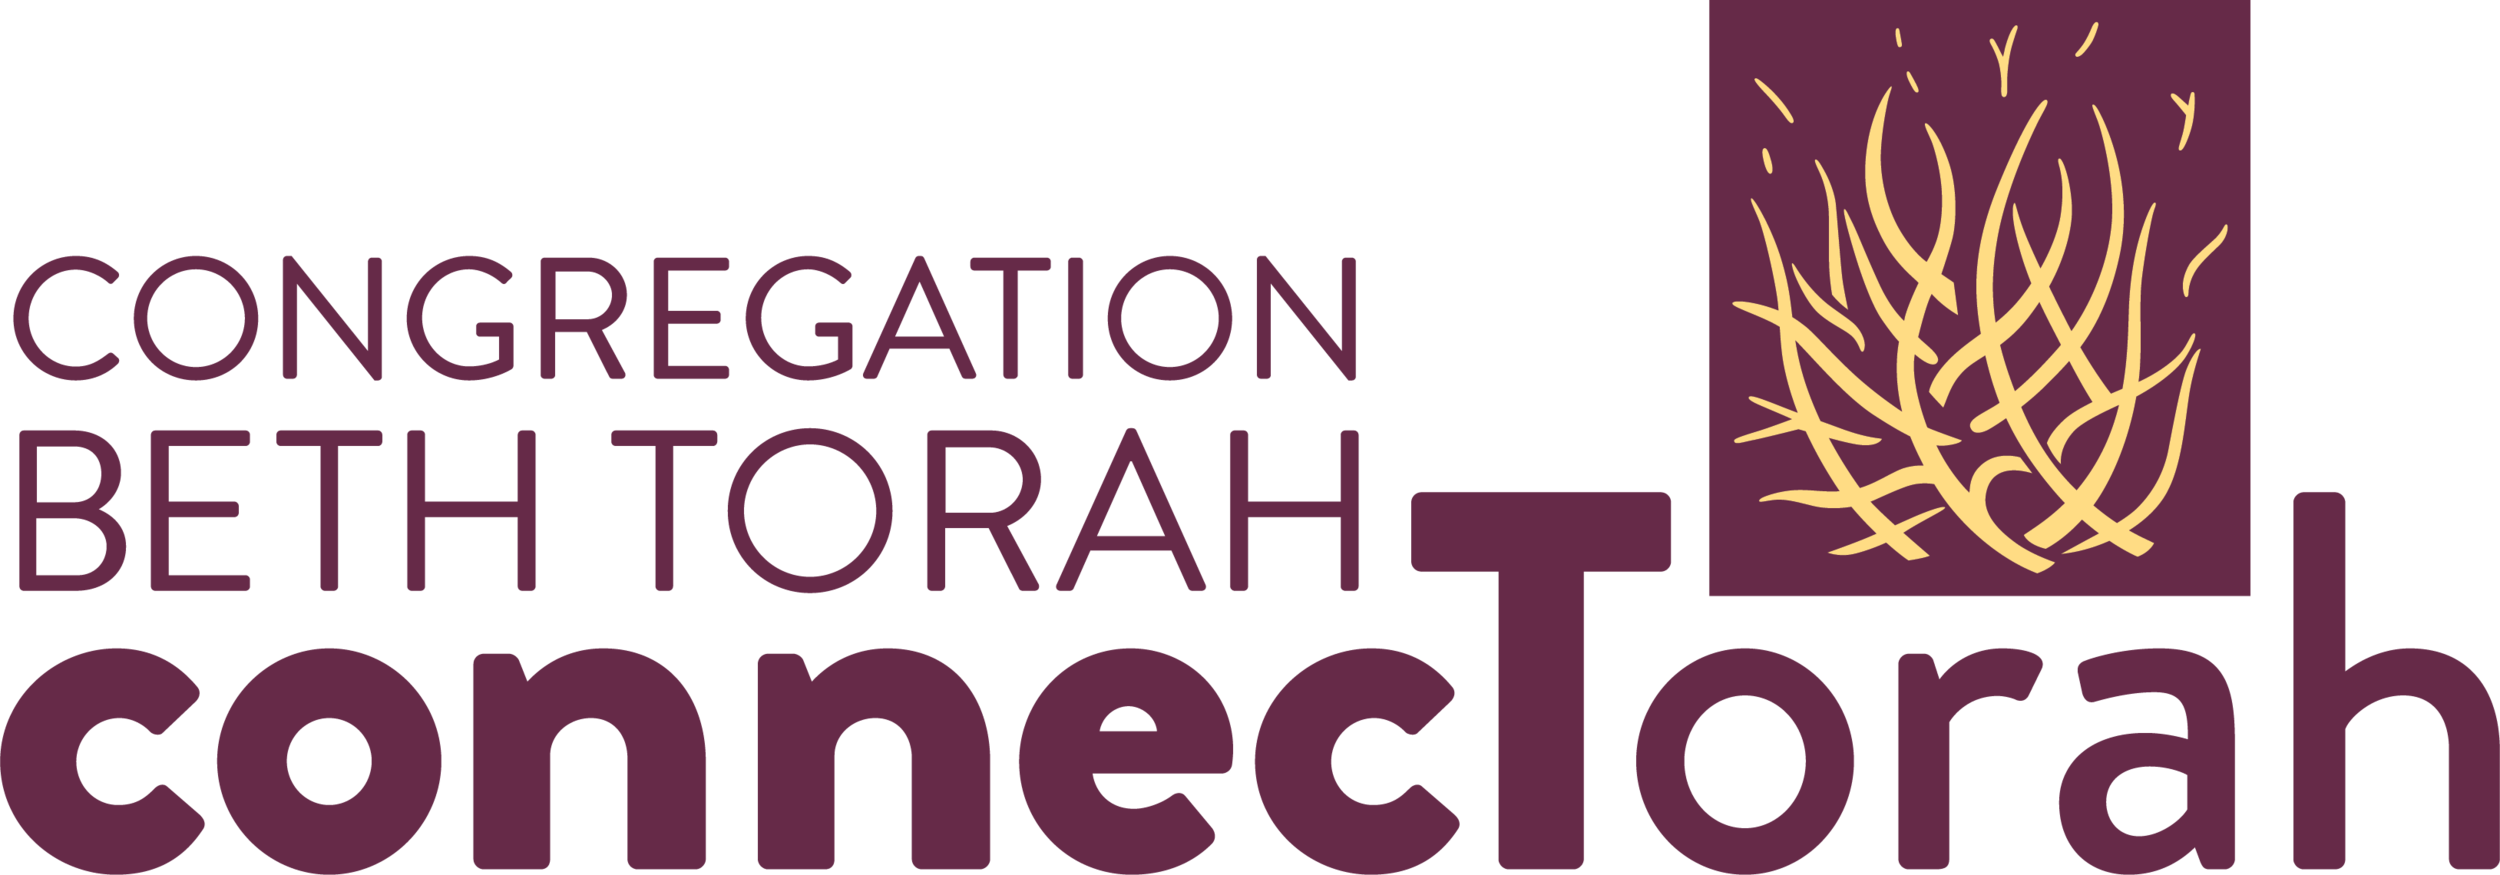 Click here for YOUR next step to connecTorah for 5780!